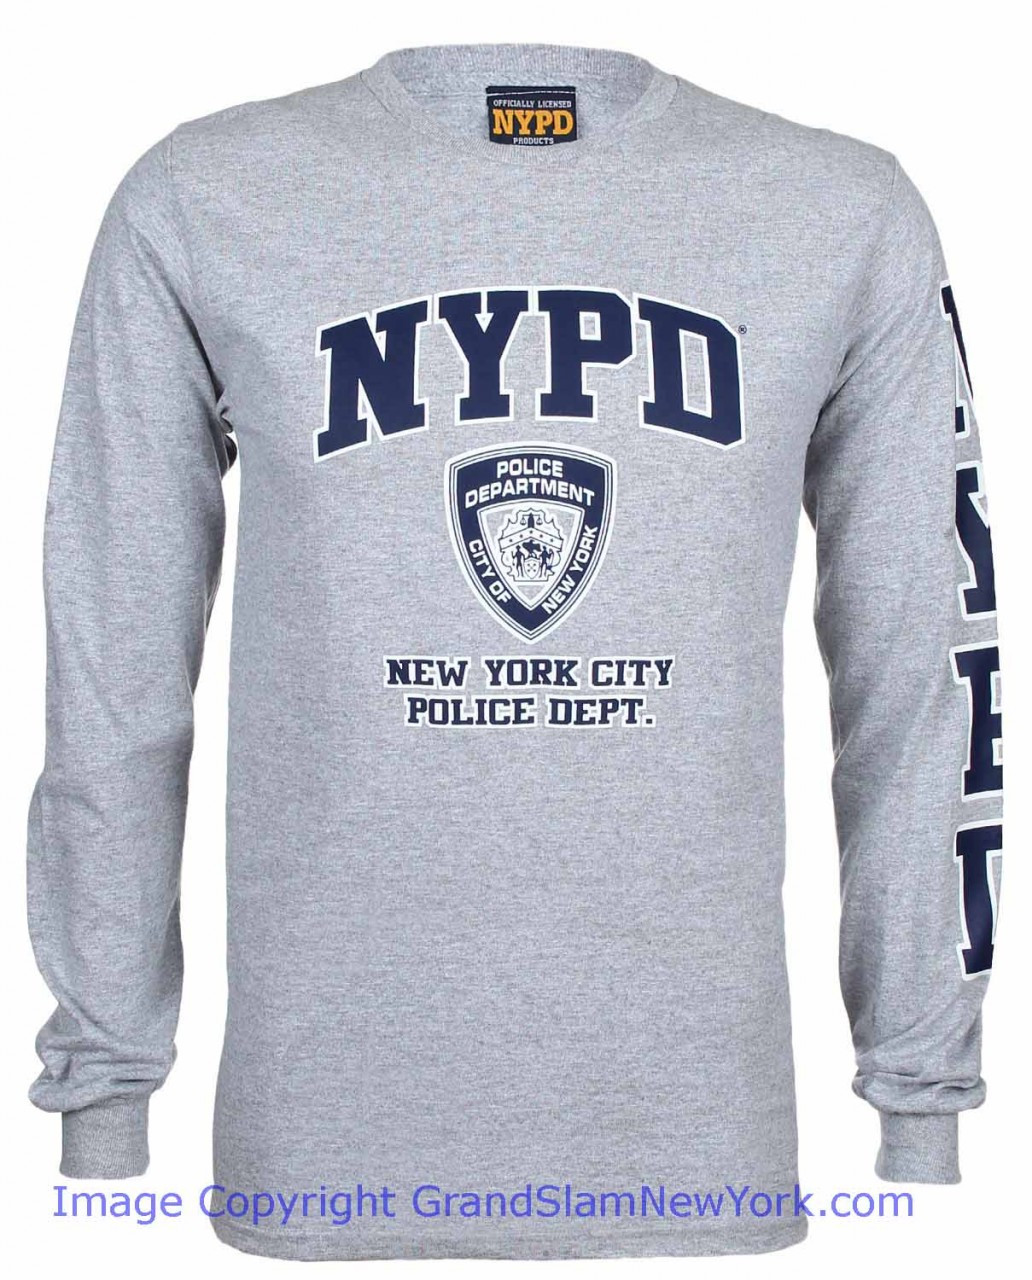 399fd704e NYPD Full Chest and Sleeve Grey LS Tee Photo. Loading zoom